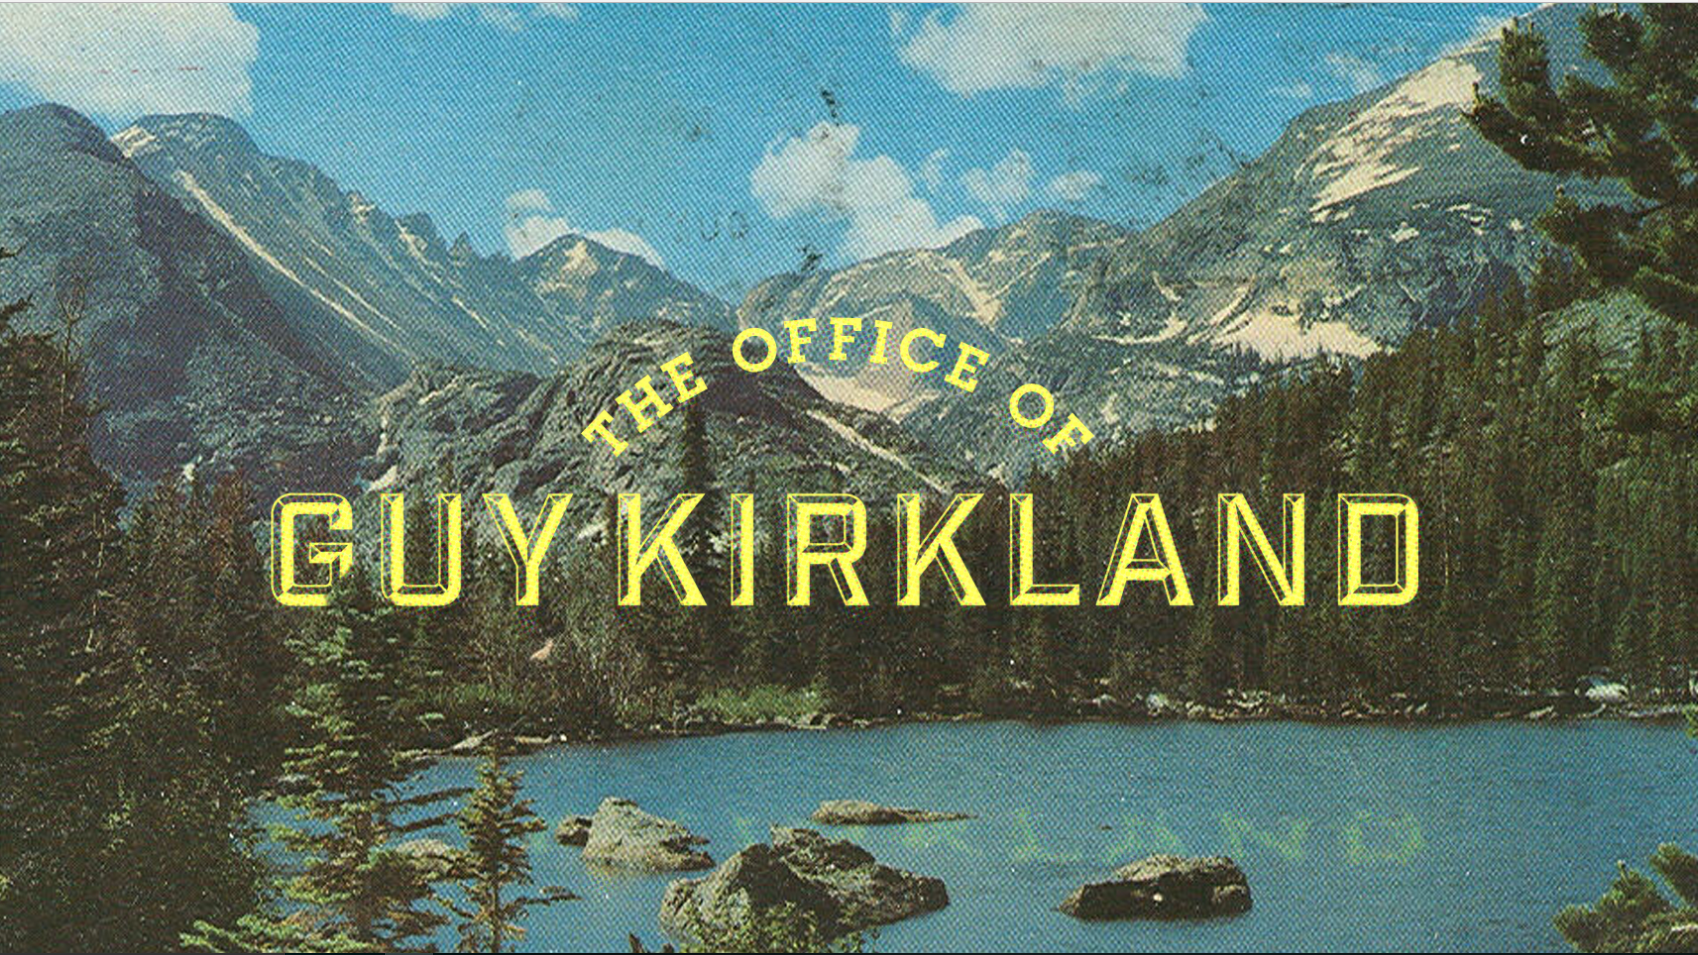 GUY KIRKLAND -- Based in Atlanta, Mr. Kirkland has one of the most fertile imaginations I've ever encountered. I have laughed mightily making chili with this talented man. Plus he has my favorite first name.